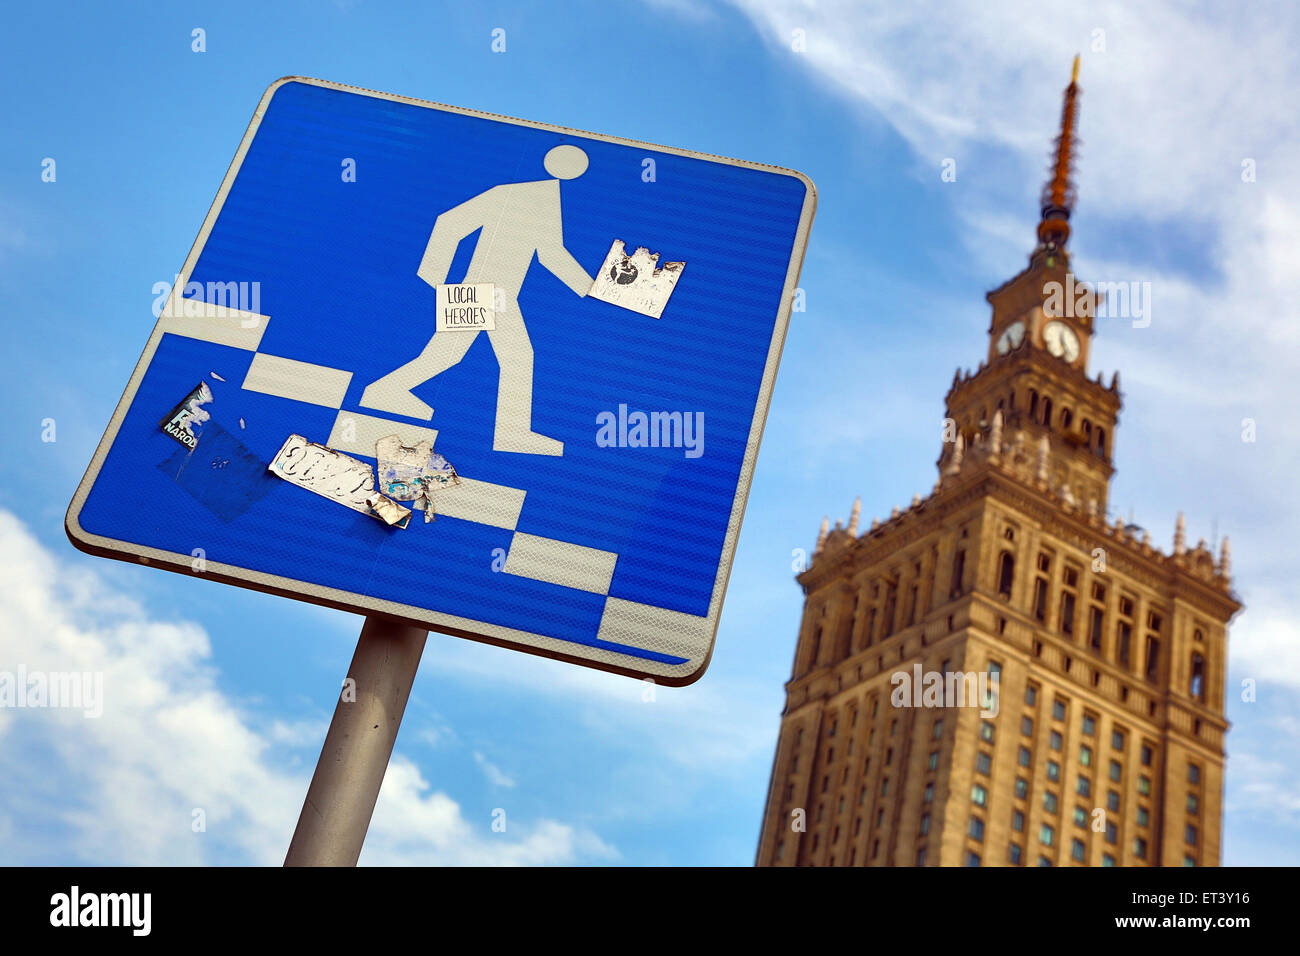 Palace of Culture and Science in Warsaw, Poland - Example of Stalinist architecture - Stock Image